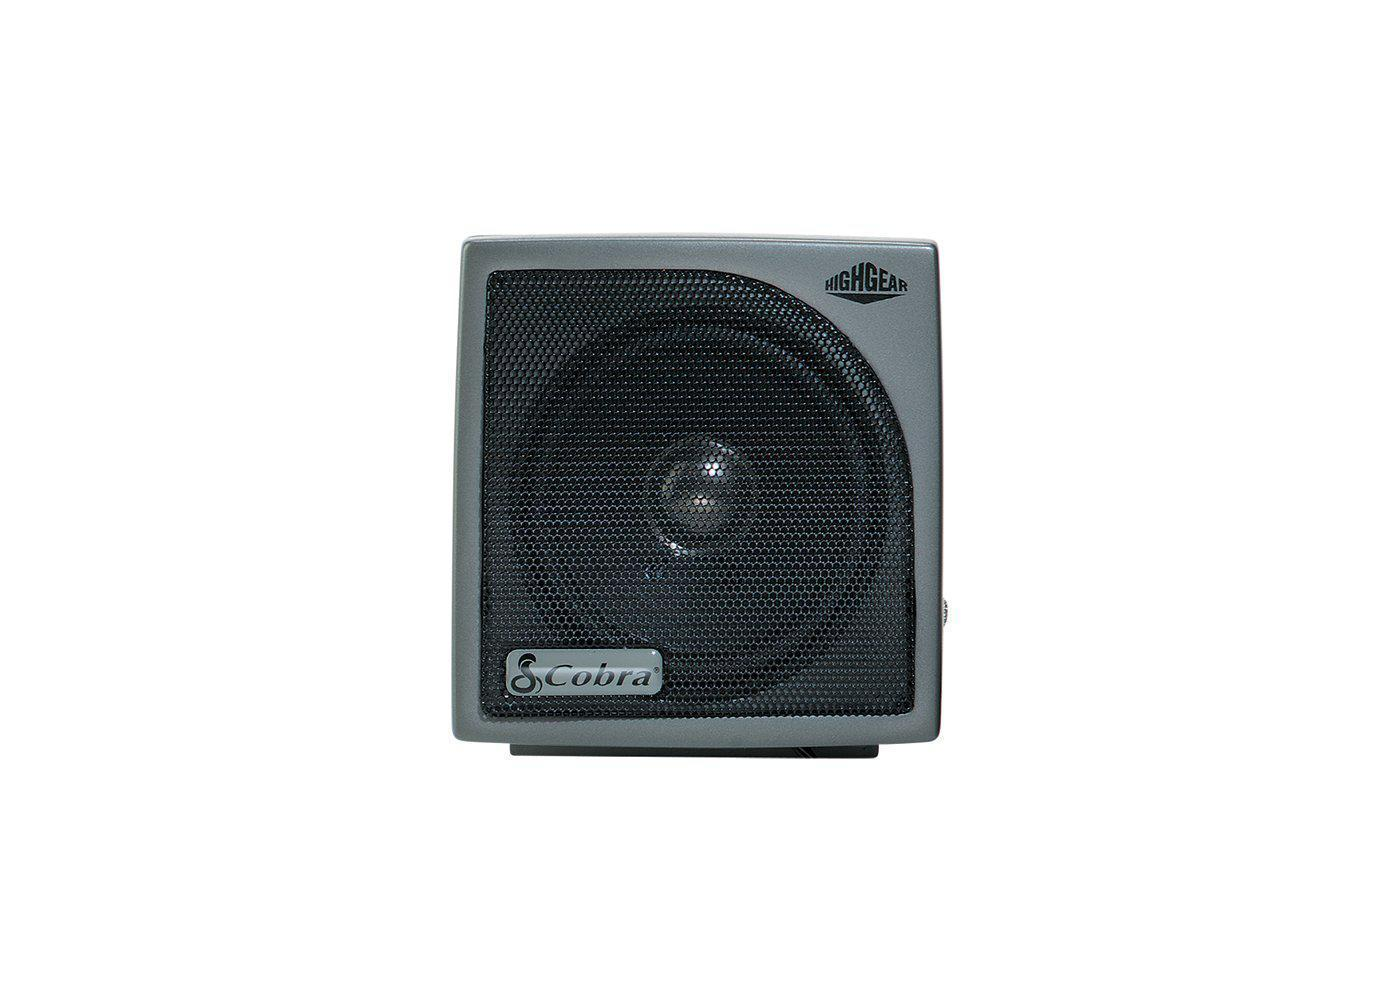 HG S300 - Dynamic External CB Speaker with Noise Filter - cobra.com